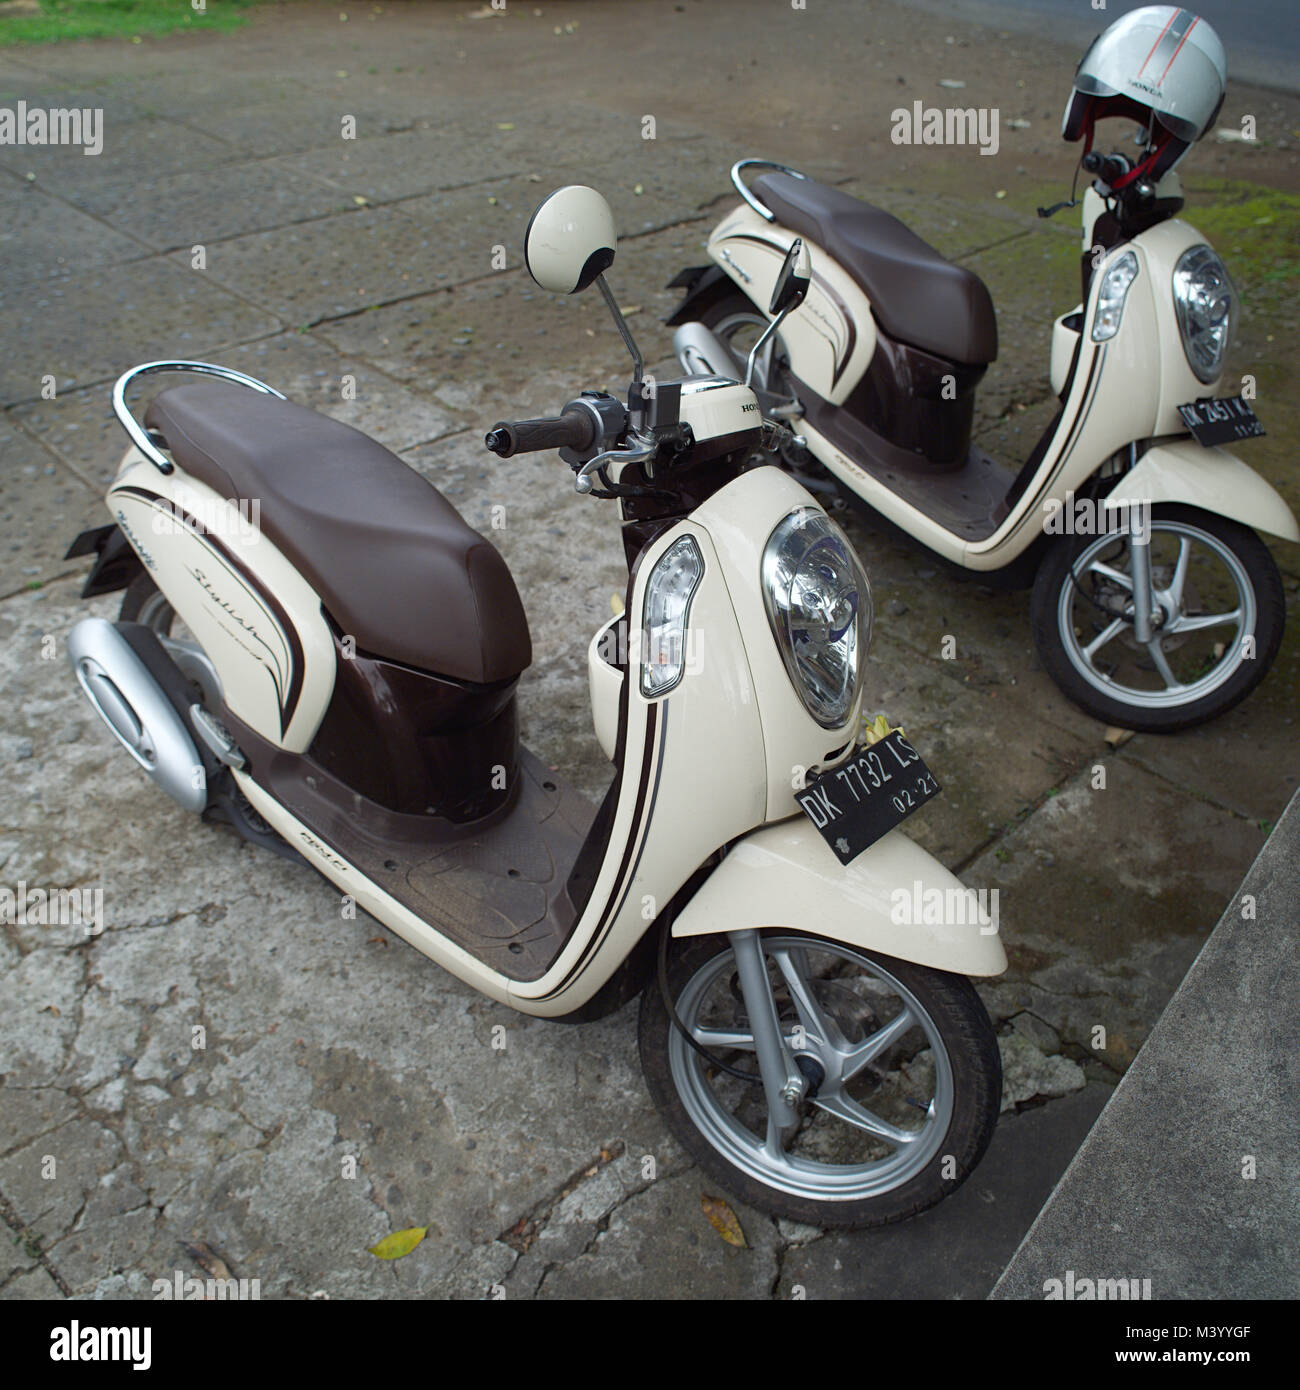 BALI, INDONESIA - AUGUST 6, 2017 - Modern classic scooter at Bali, Indonesia - Stock Image